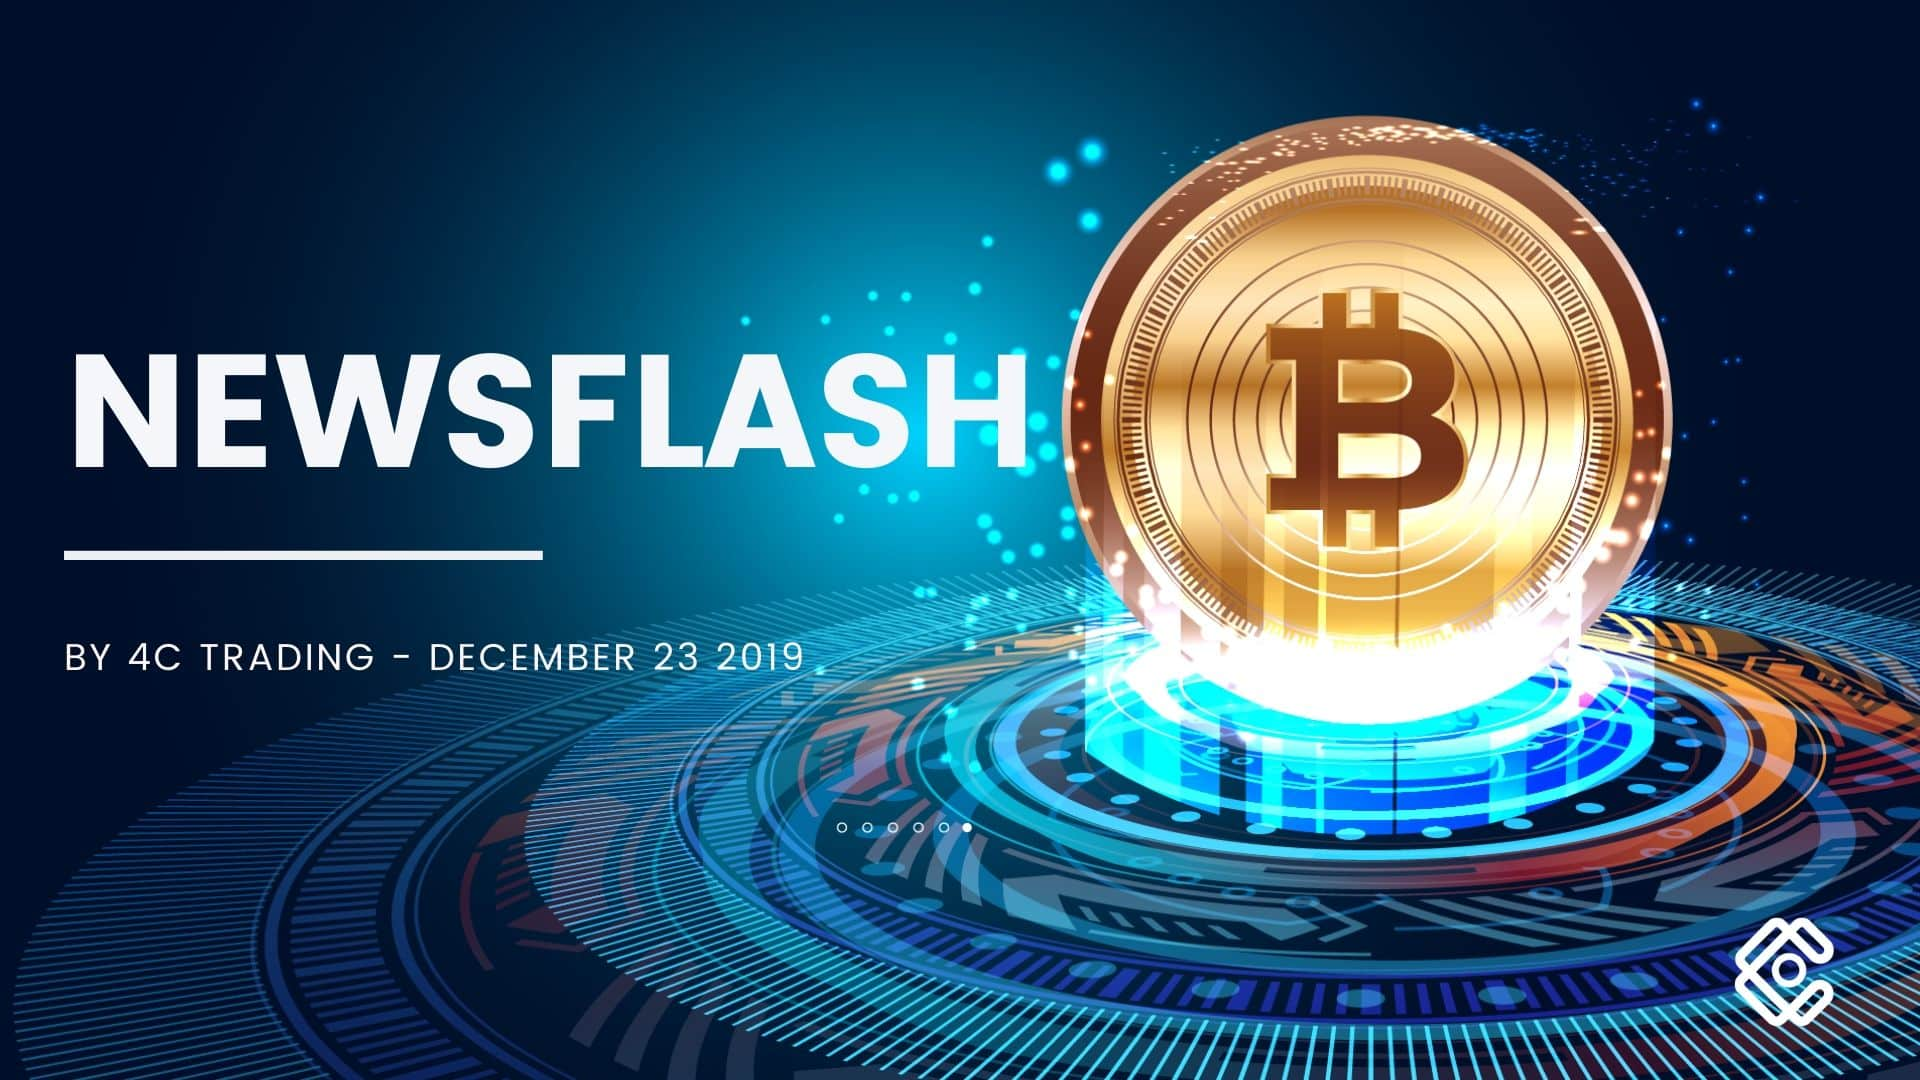 Newsflash of December 23, 2019